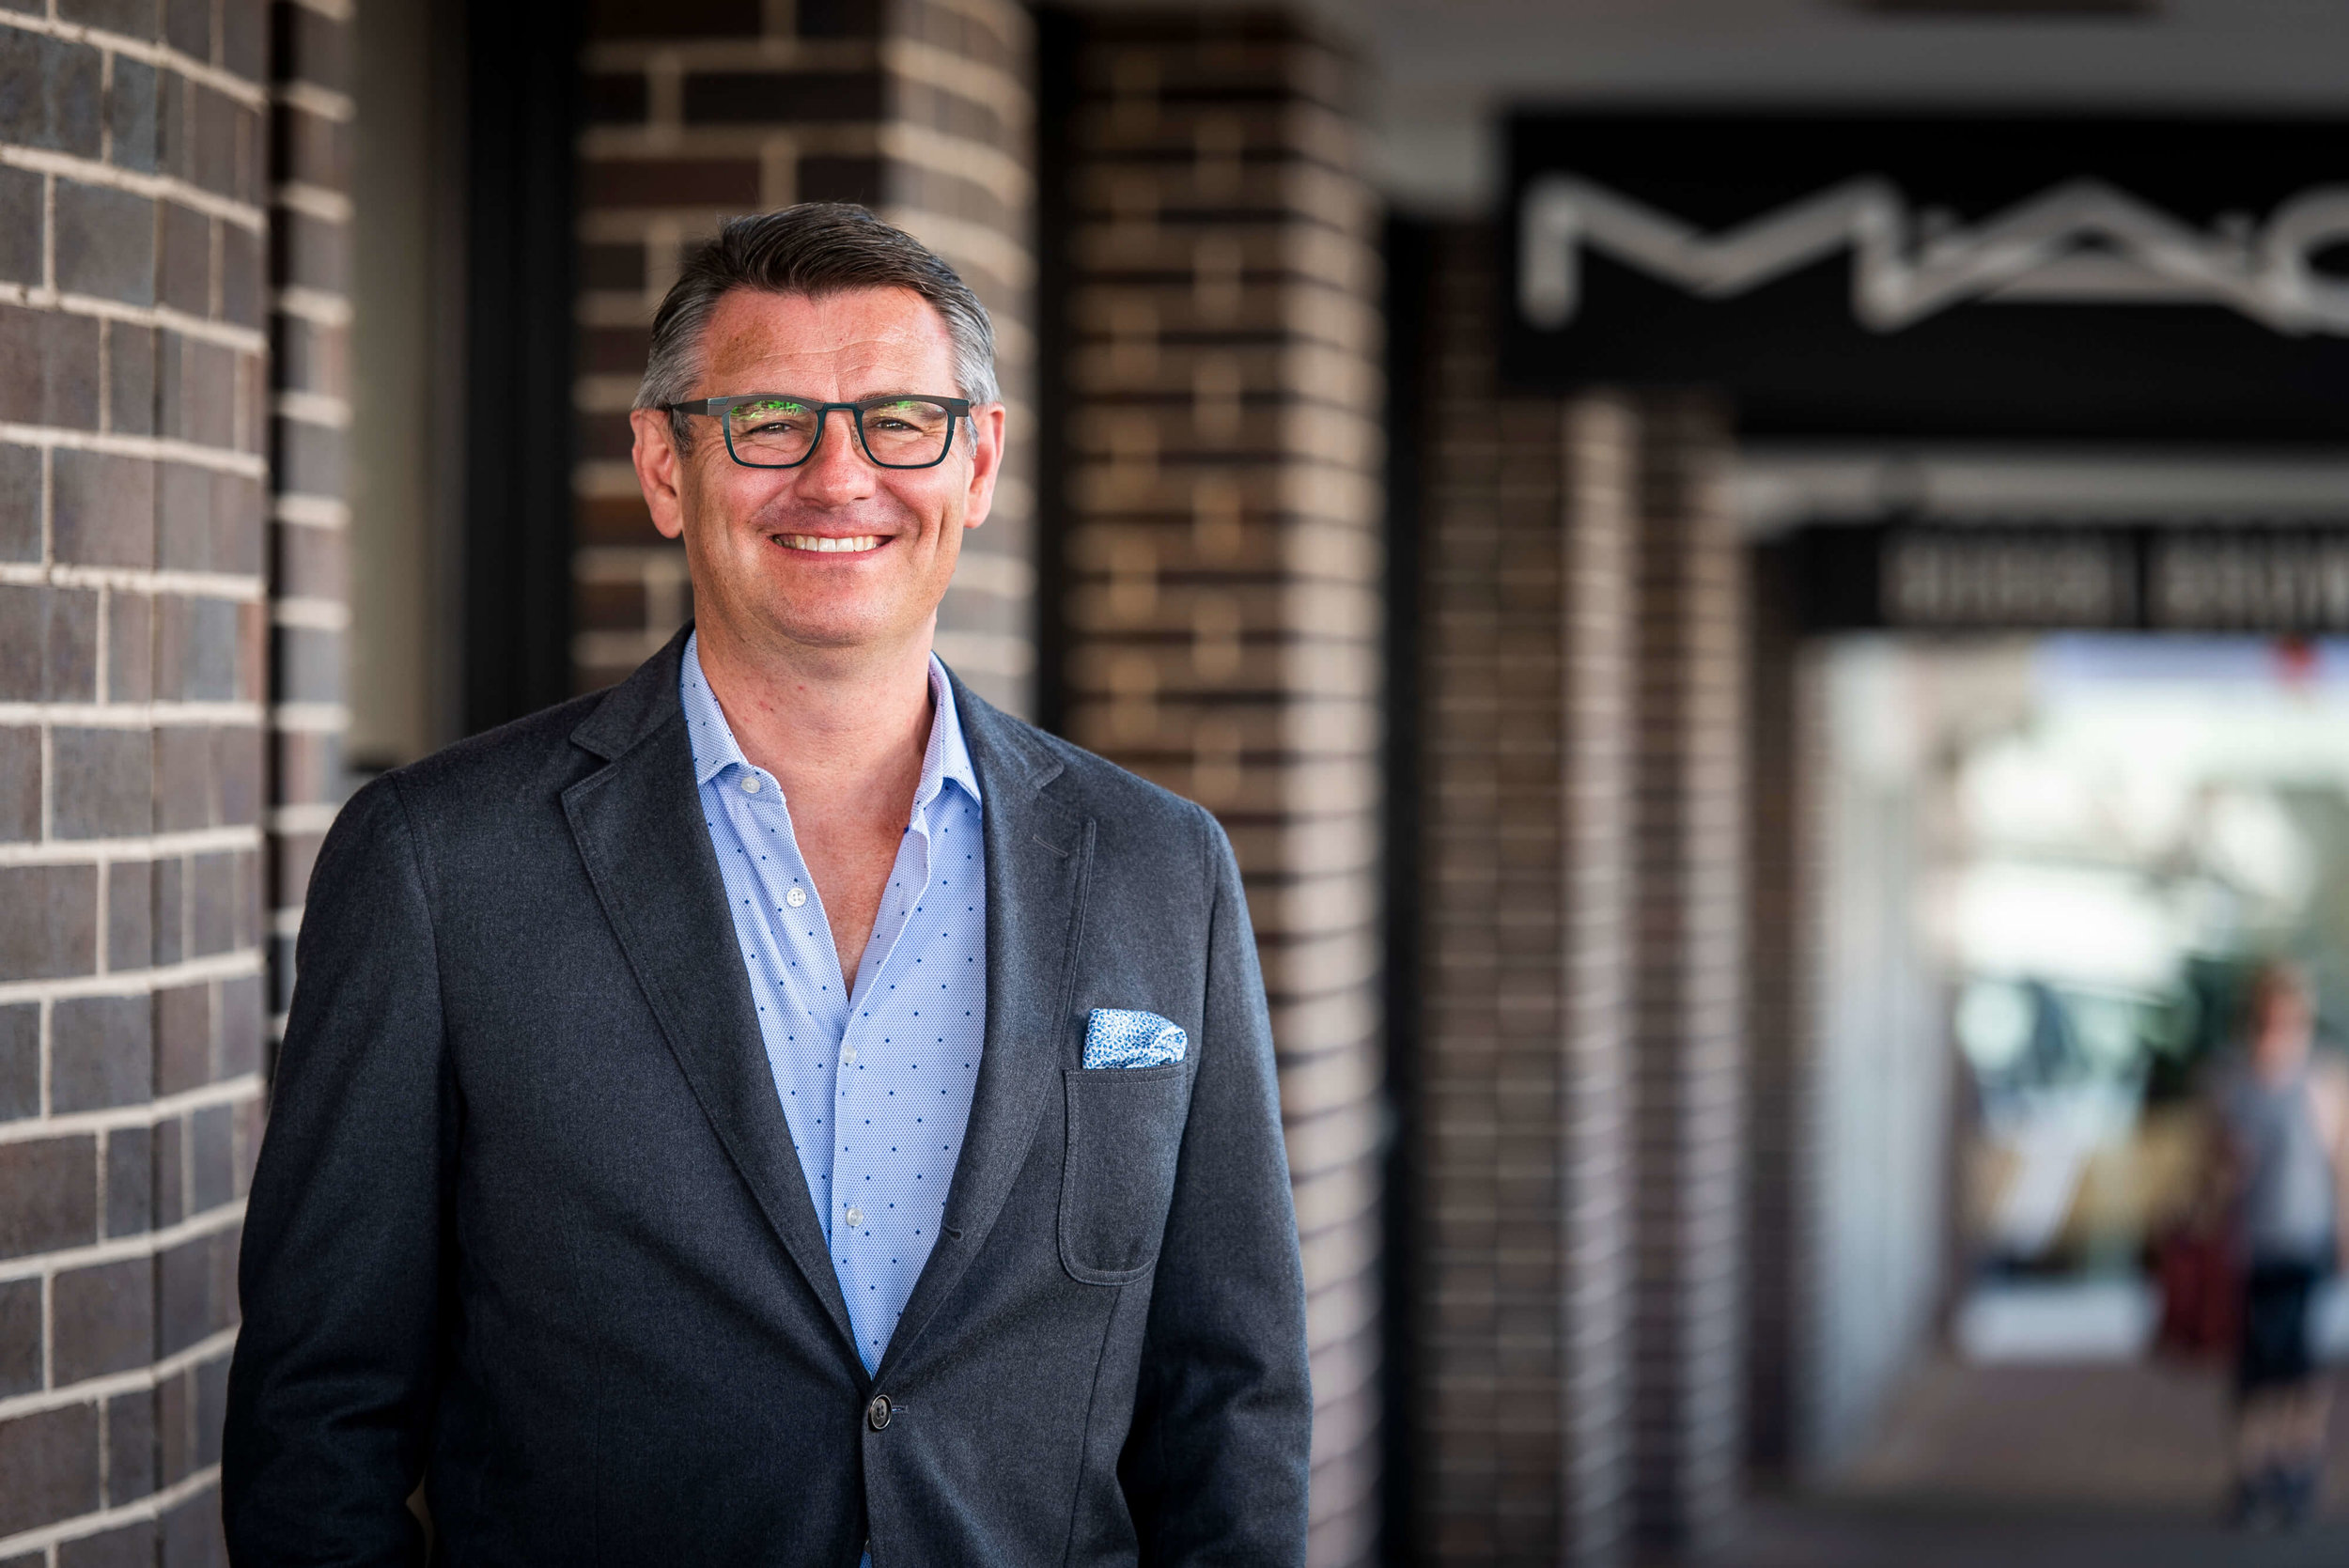 """MOSMAN VILLAGE CONTINUES TO ATTRACT CUSTOMERS AND RETAILERS WHO ARE DISILLUSIONED WITH BIG SHOPPING MALLS"" - - Scott Stephens, Director Ray White Lower North Shore."